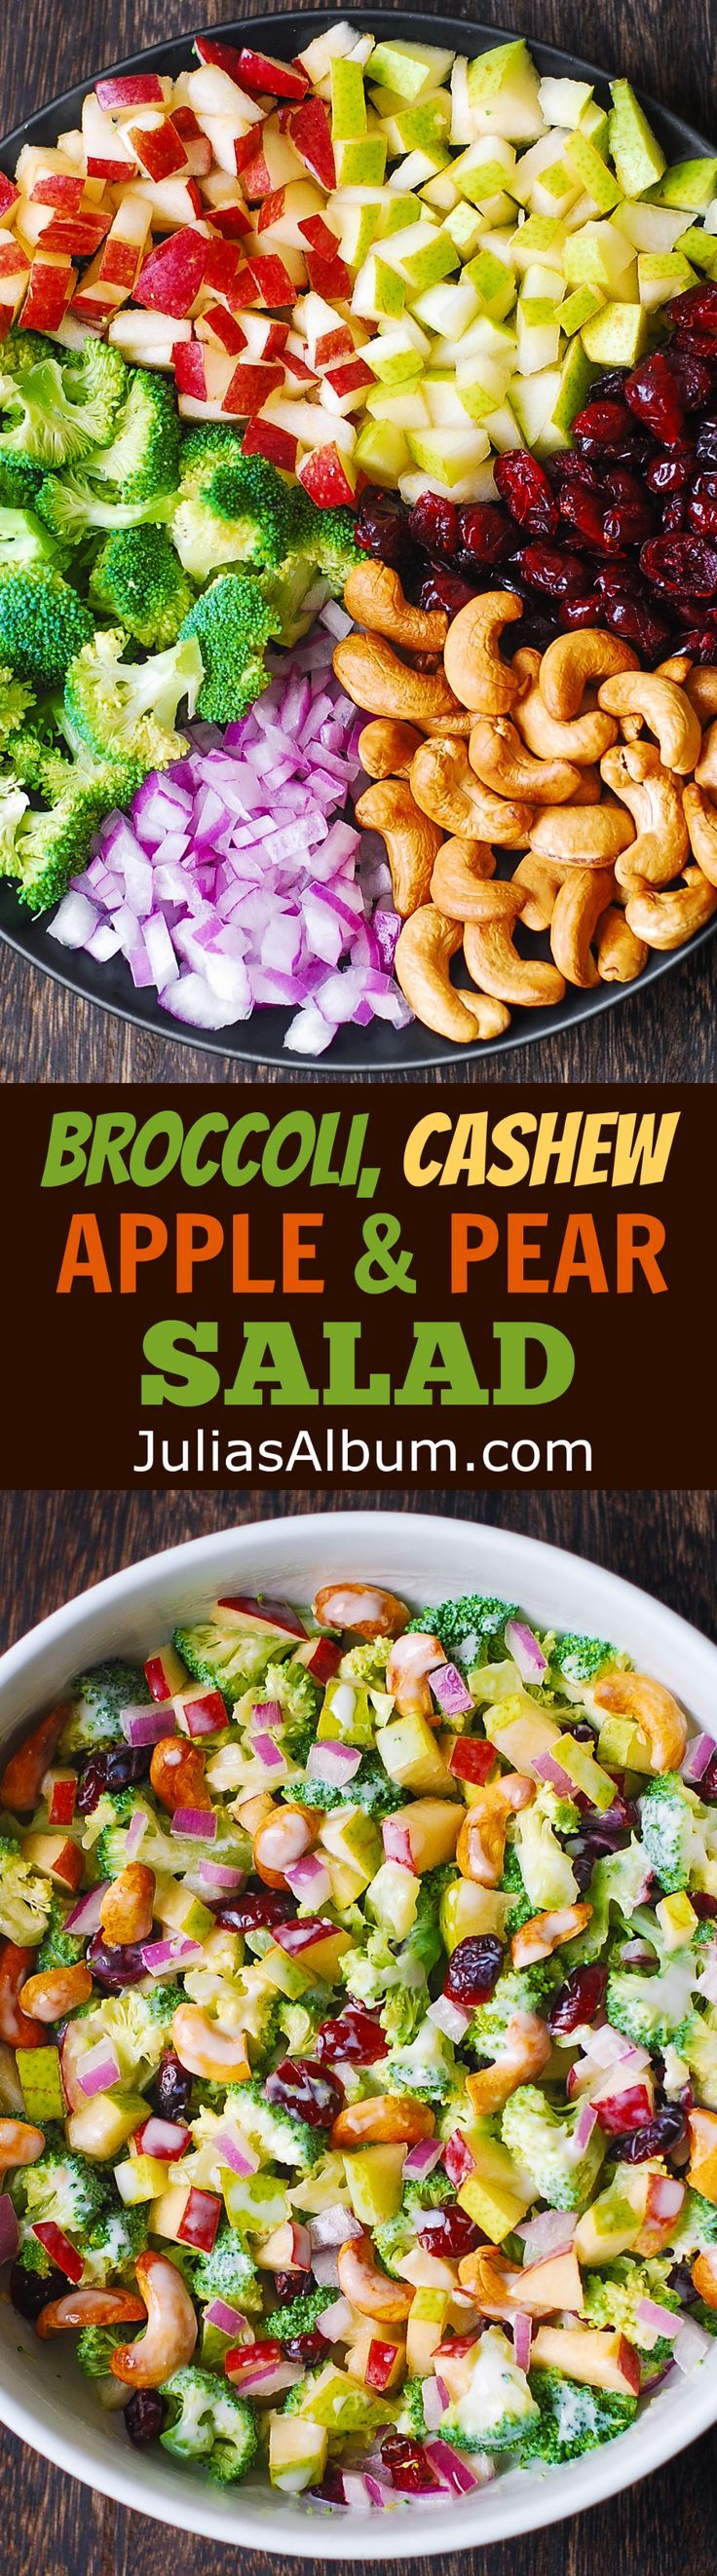 Broccoli, Cashew, Apple and Pear Salad with Cranberries and chopped red onions with the most delicious homemade salad dressing, made with mayonnaise, sour cream (or kefir or Greek yogurt), honey, and lemon juice!